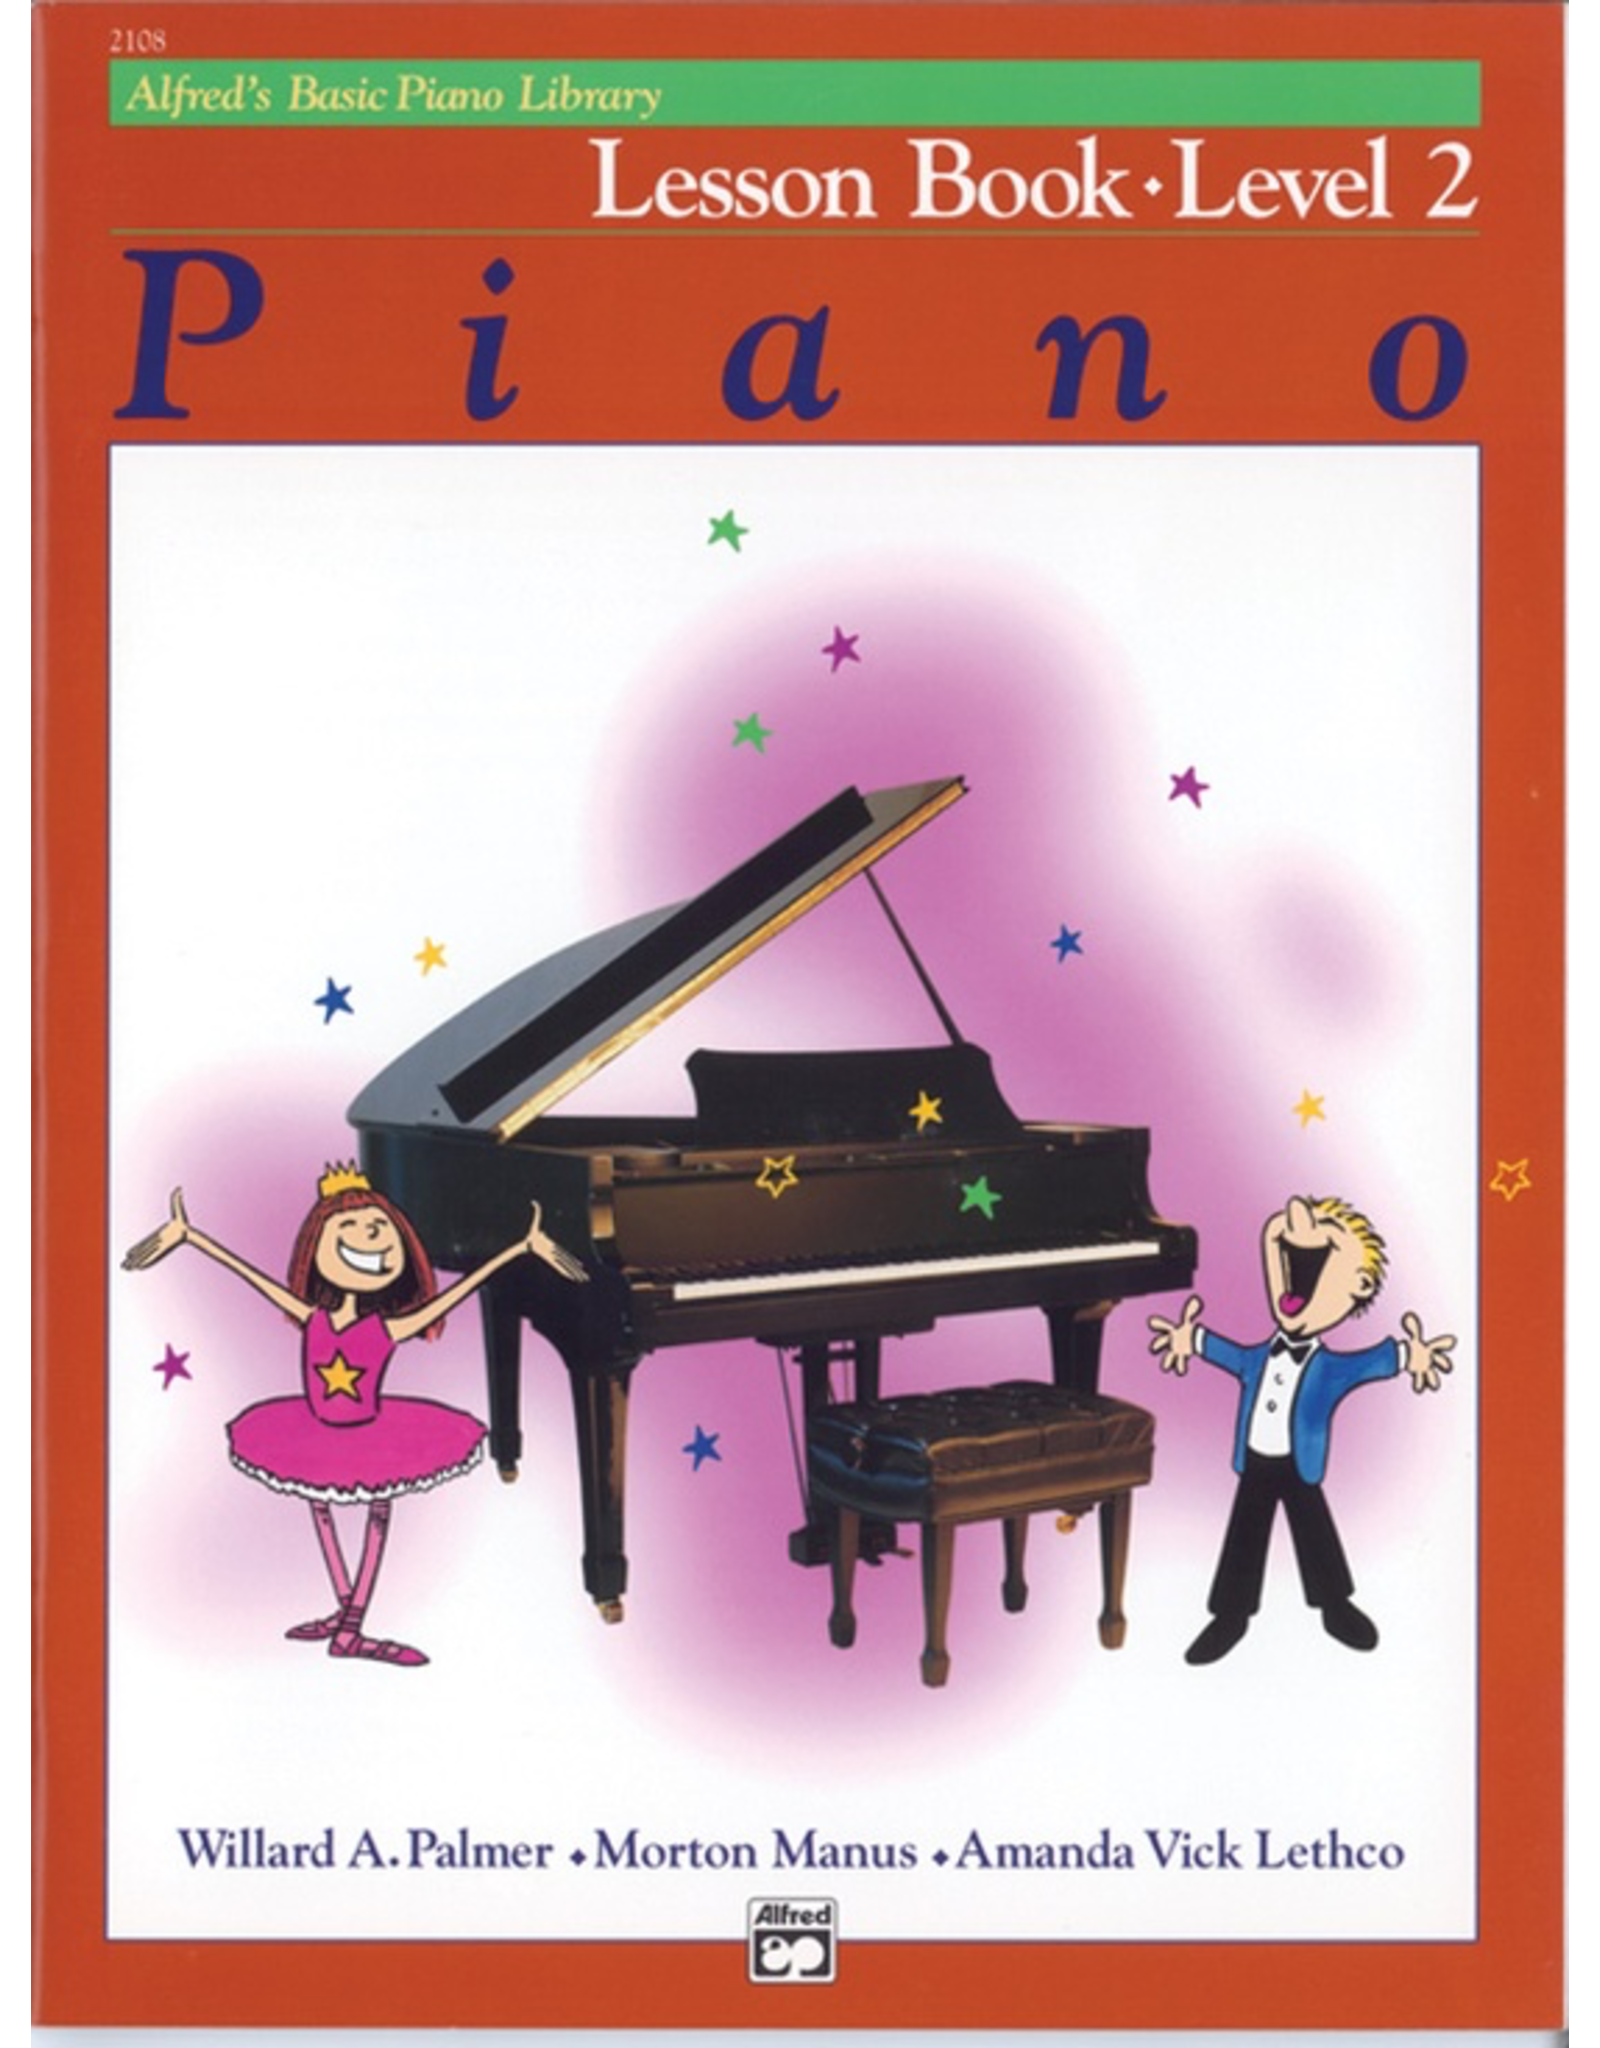 Alfred Alfred's Basic Piano Library Lesson Book Level 2 *